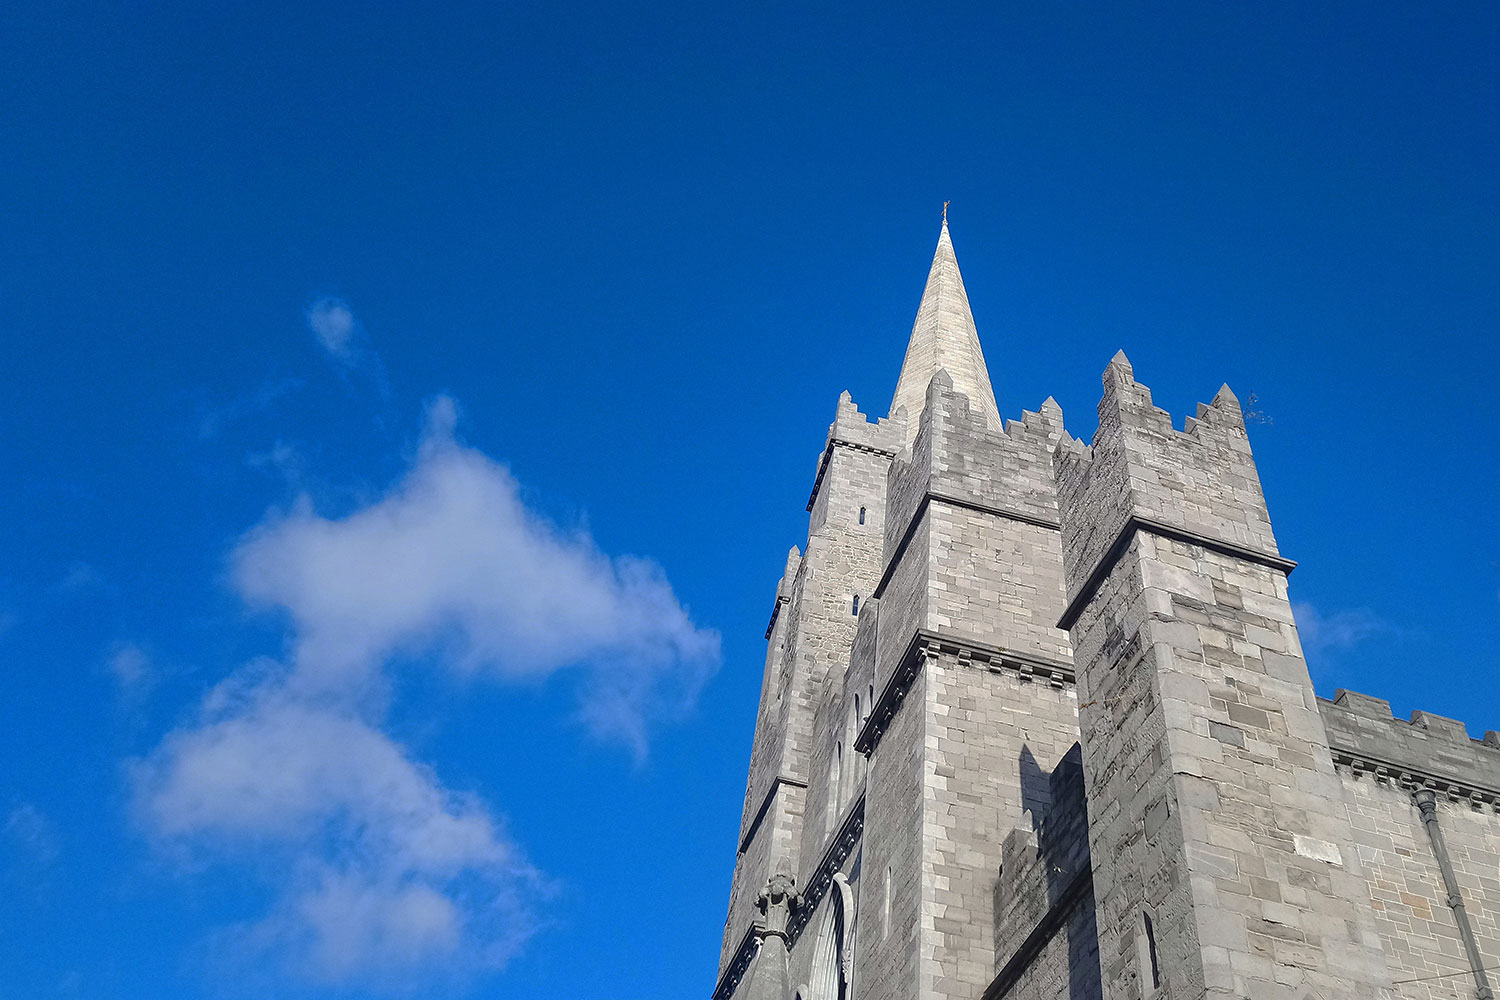 St Patrick's Cathedral - Shining a light on the Church of Ireland's National Cathedral with new visitor interpretation.